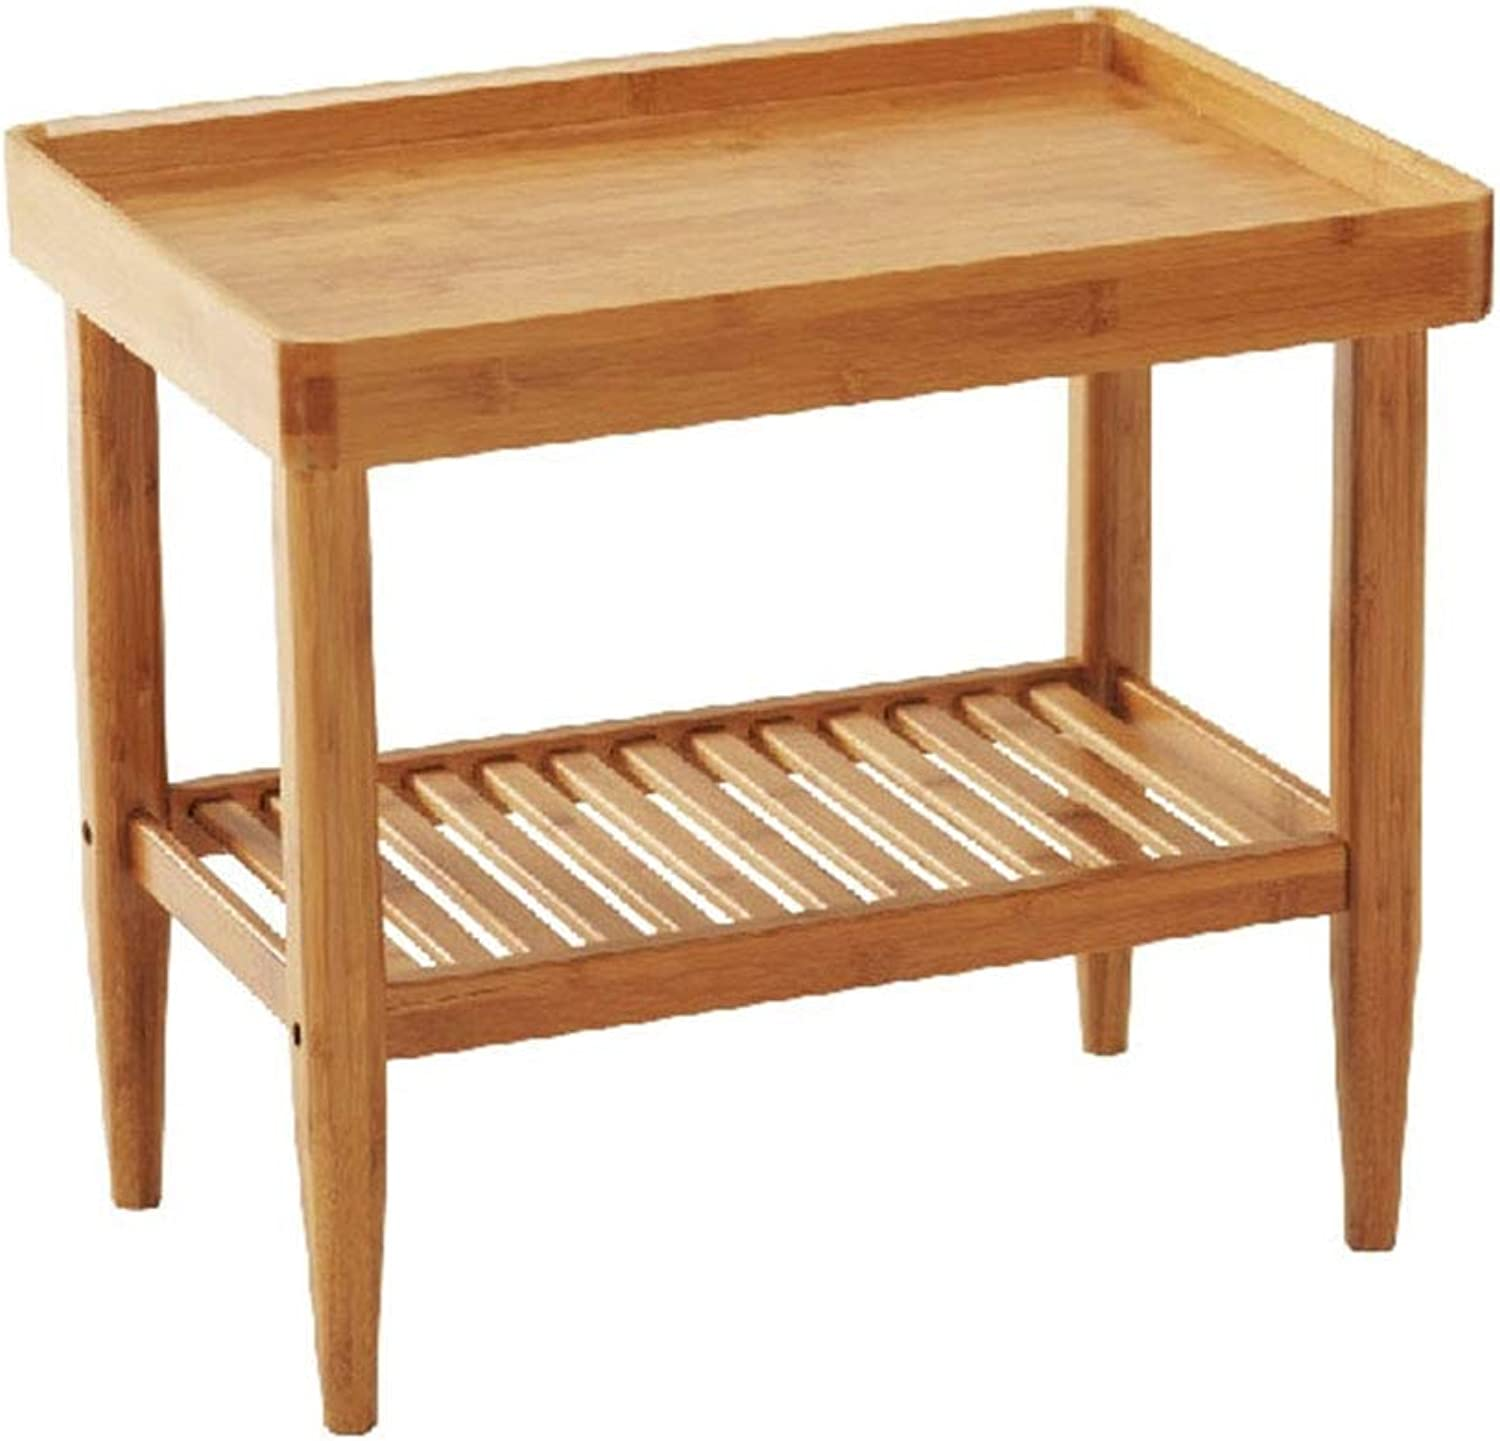 Coffee Table Side Table, Bamboo Legs Open Storage Multipurpose Double Shelf Household Living Room Small Tea Table